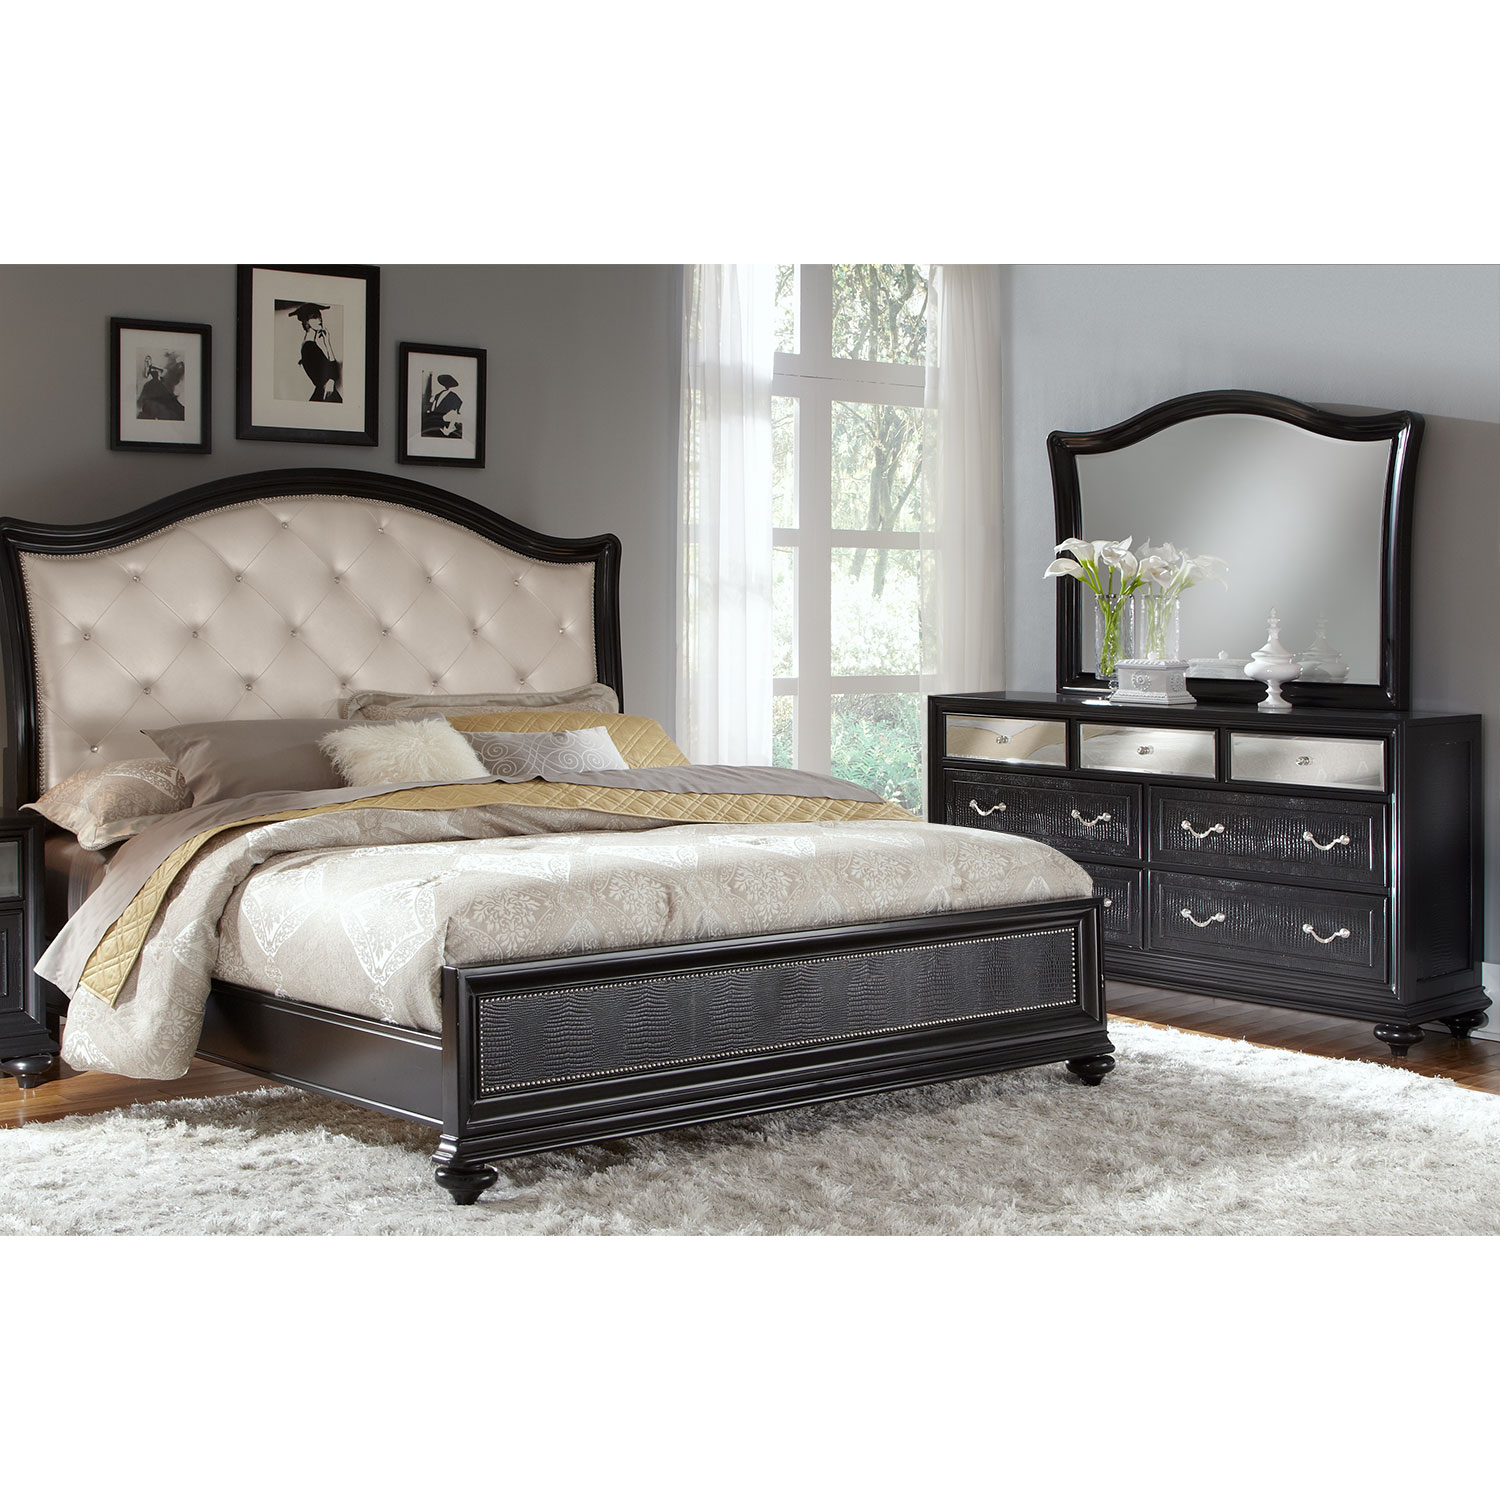 King Bedroom Set Ebony Hover To Zoom